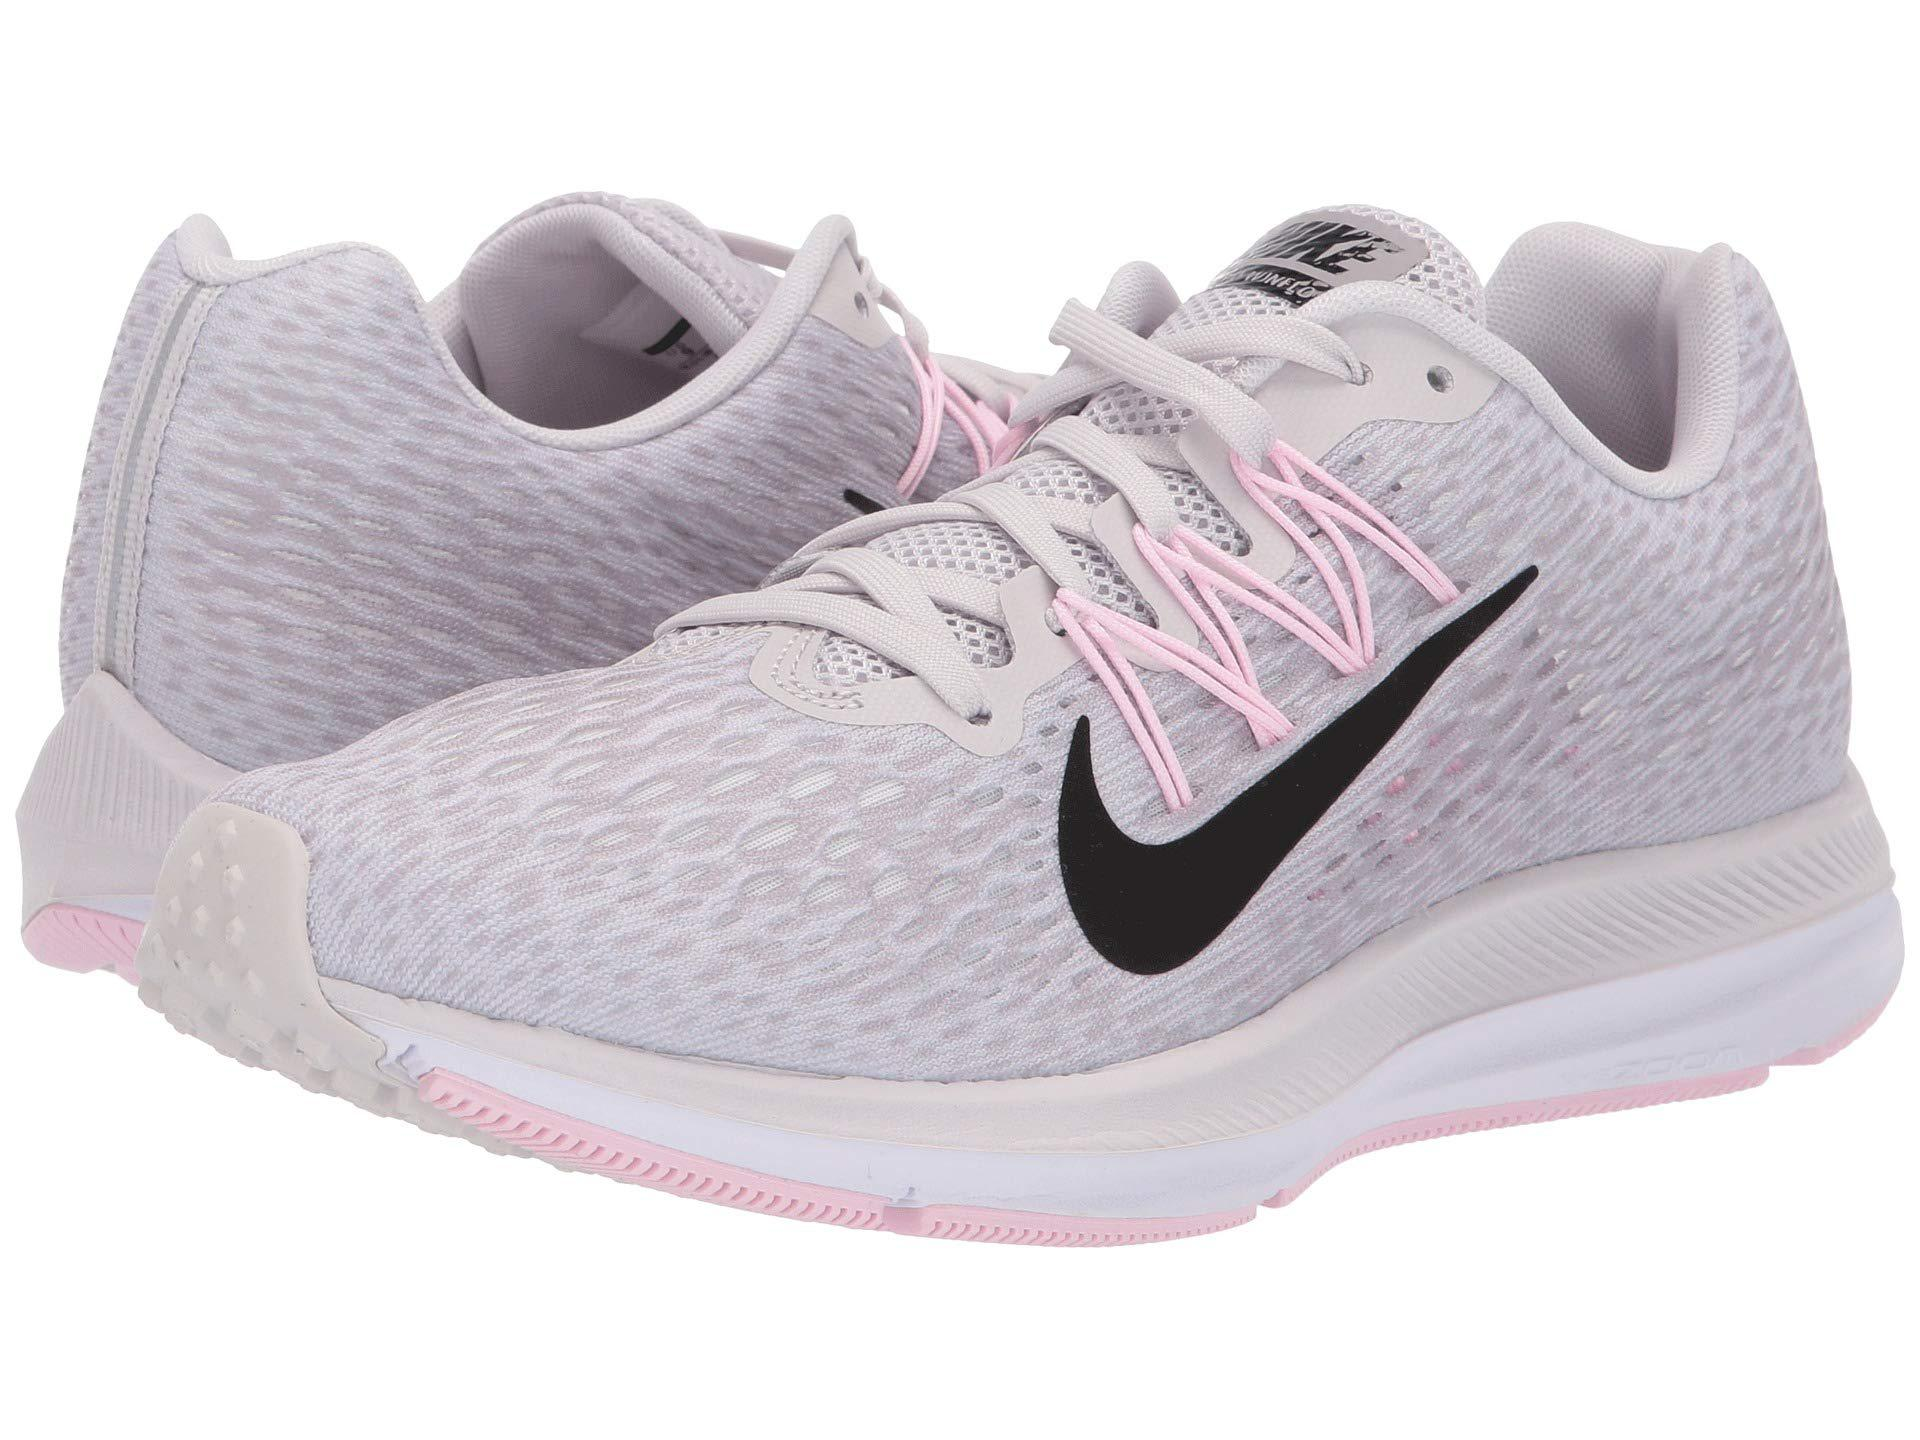 sports shoes a2a64 dc1cf Nike Air Zoom Winflo 5 (black white anthracite) Women s Running ...